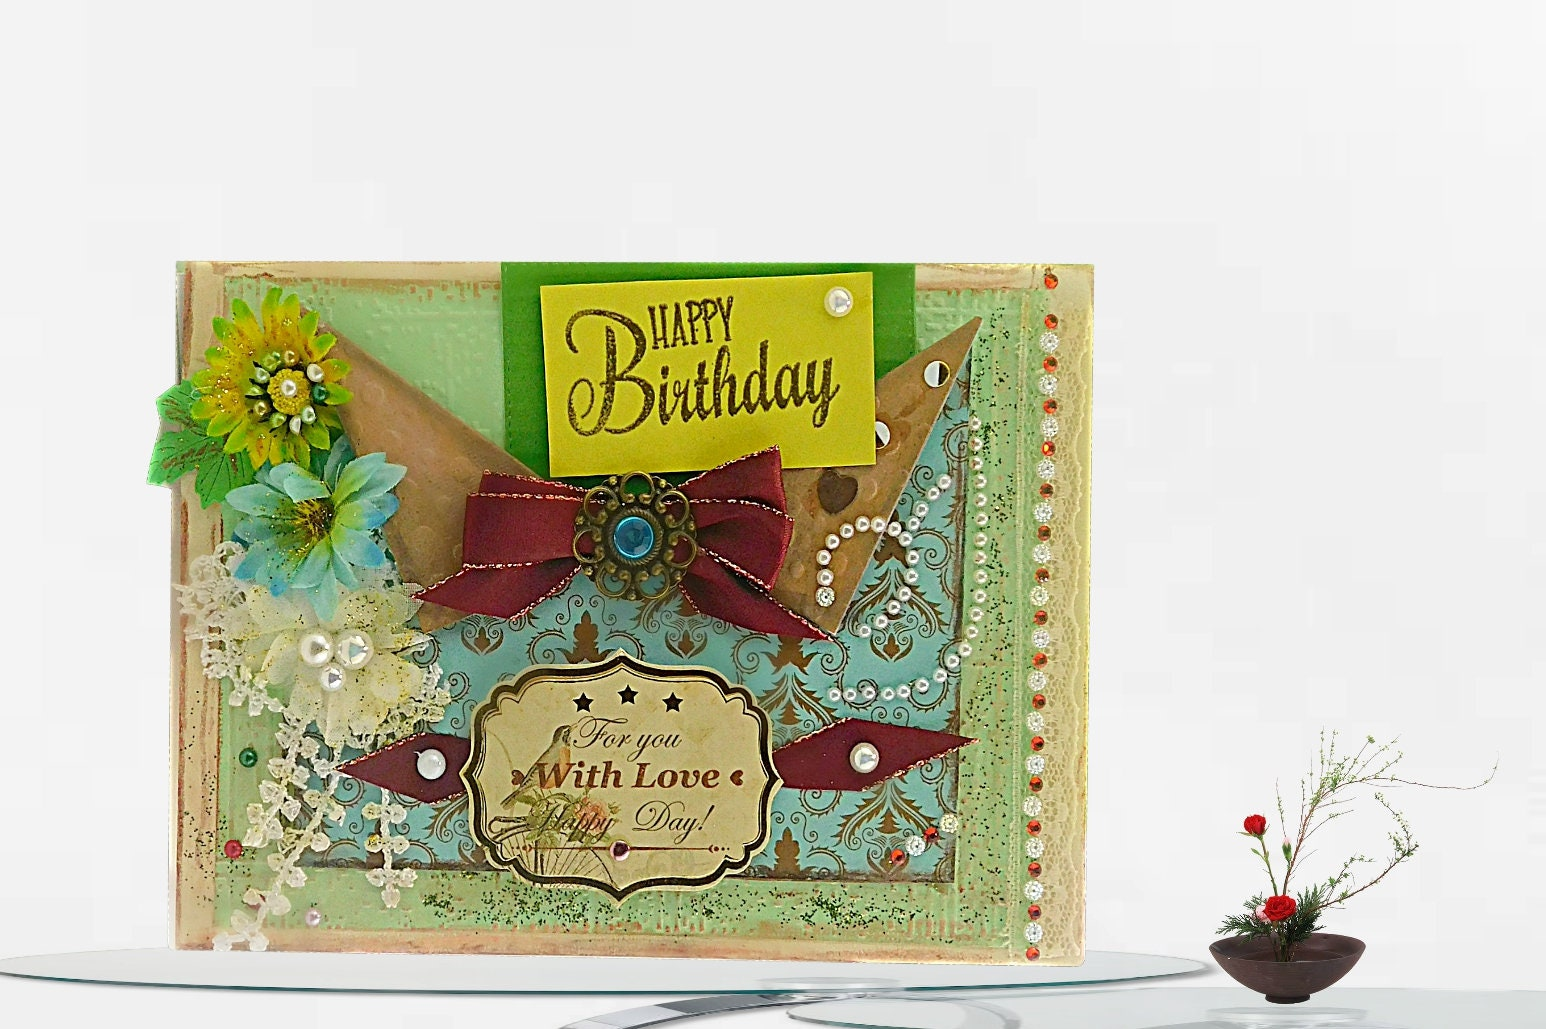 Happy Birthday Cards Autumn Colors Custom Card For Woman Mom Sister Best Friend Embossed With Foiled Inside Lettering